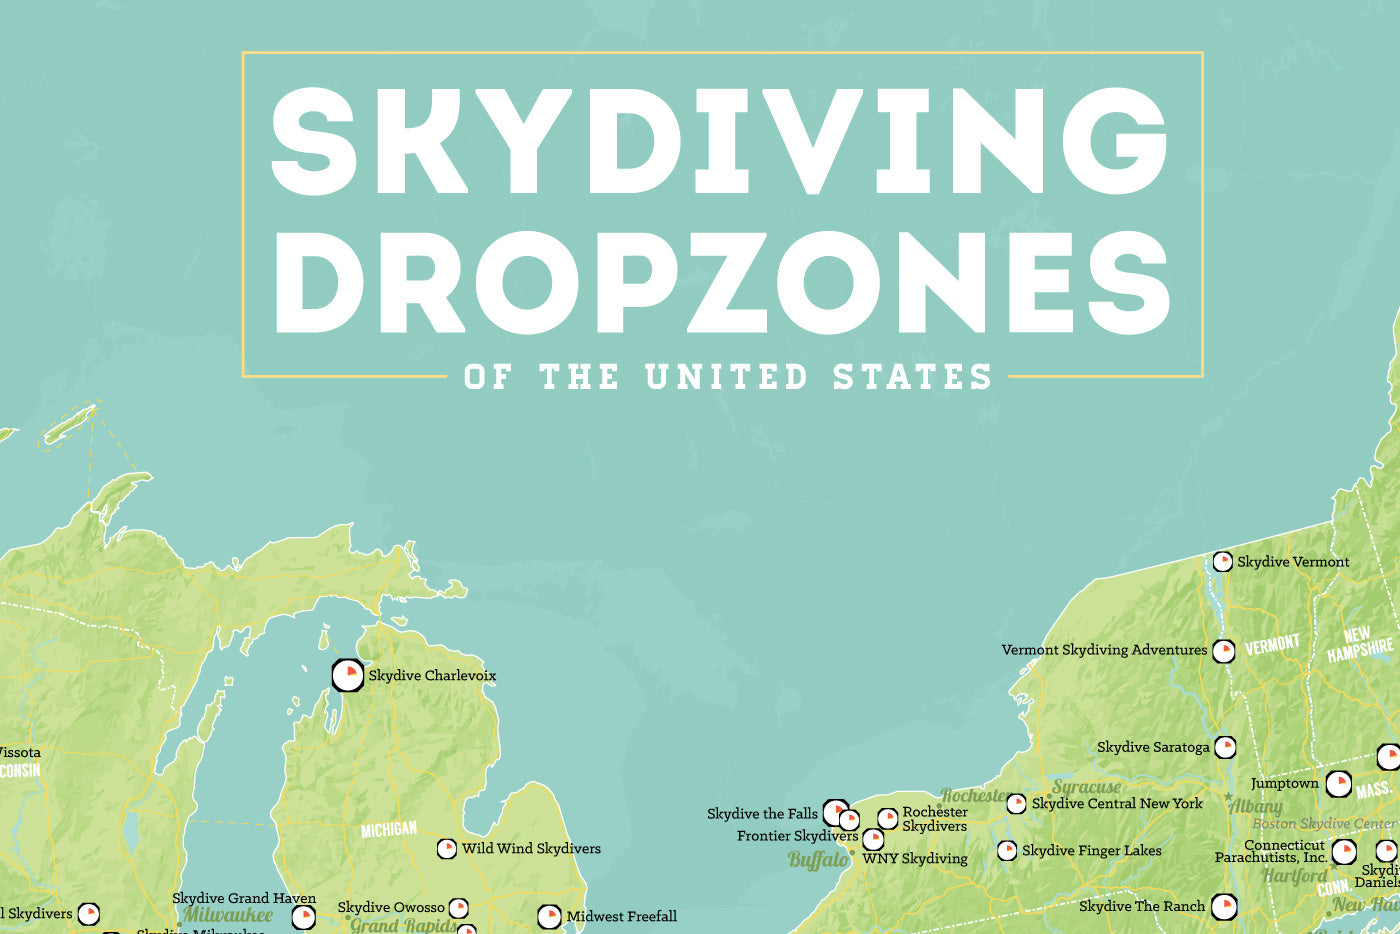 US Skydiving Dropzones Map 24x36 Poster on distressed usa map, apple usa map, desert usa map, white usa map, colorless usa map, hand drawn usa map, color usa map, navy usa map, camouflage usa map, sapphire usa map, wooden usa map, phoenix usa map, whatever usa map, oceans usa map, black usa map, framed usa map, rainbow usa map, rust usa map, burgundy usa map, small usa map,